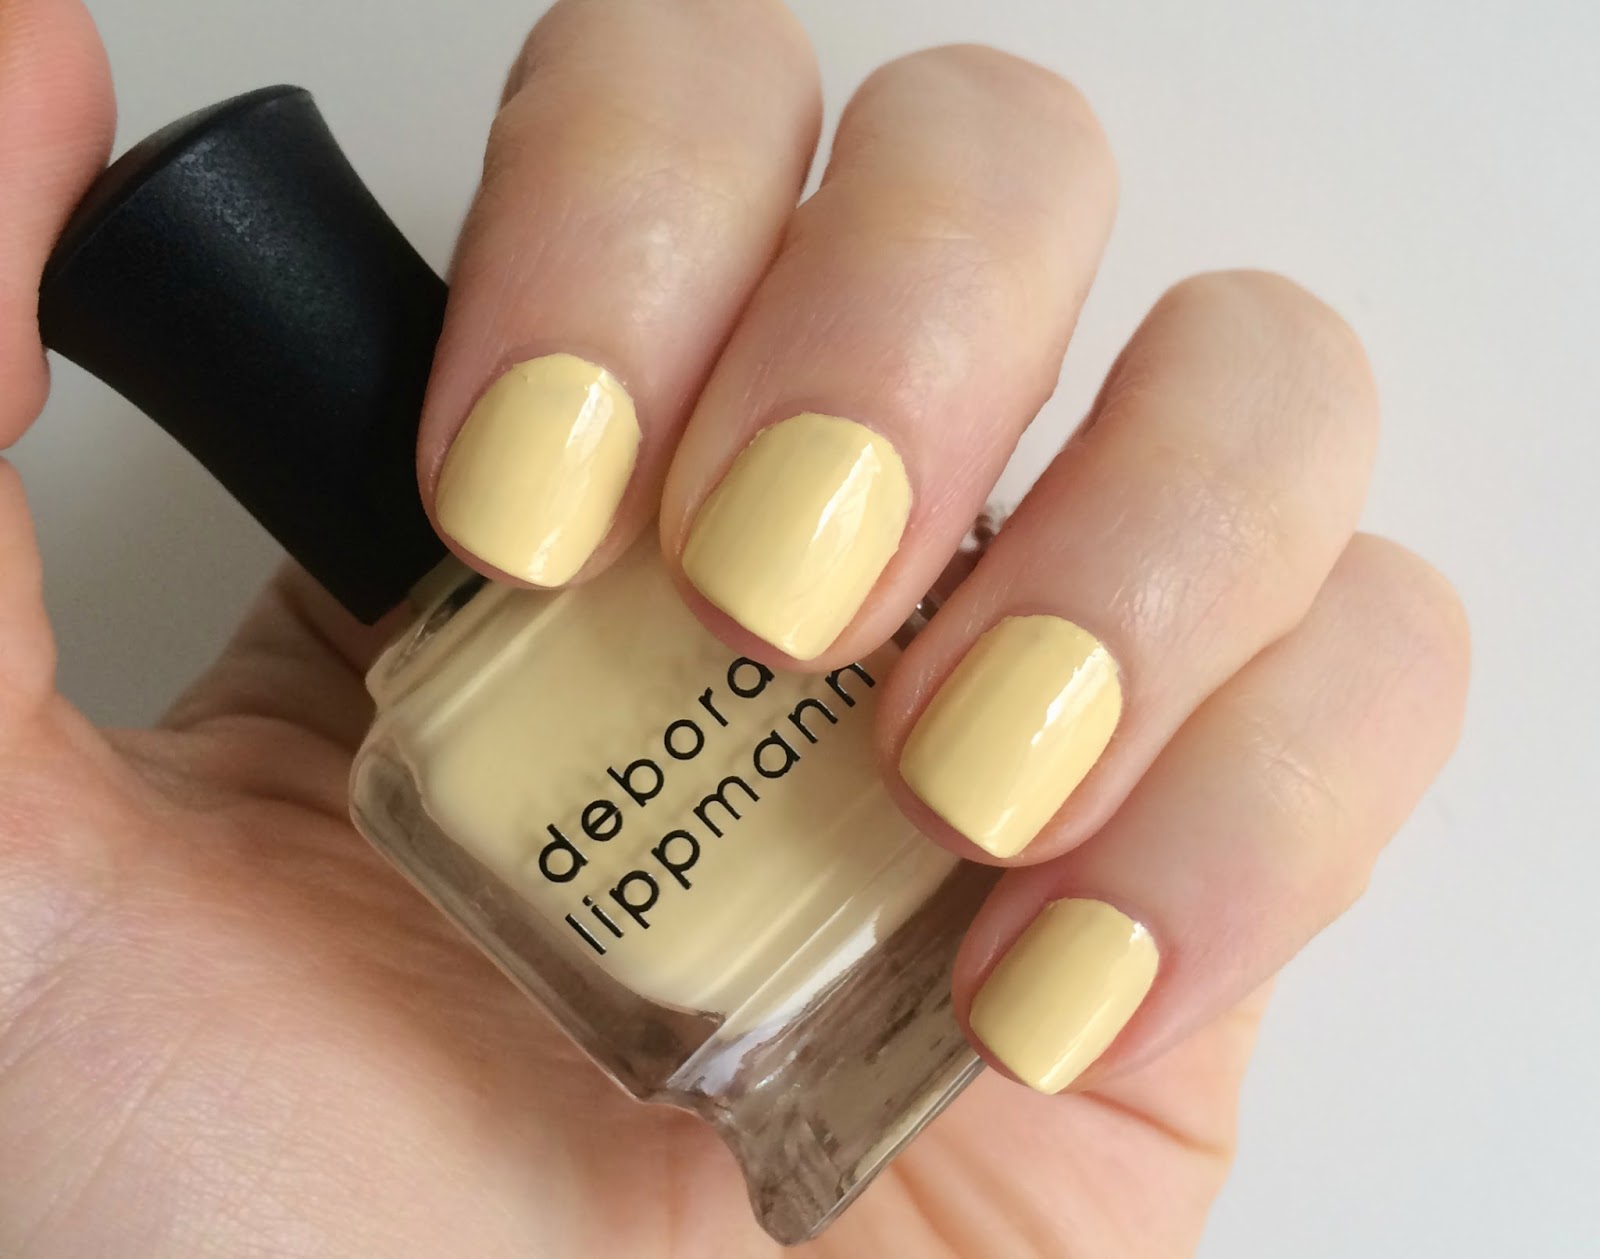 Deborah Lippmann Build Me Up Buttercup swatch